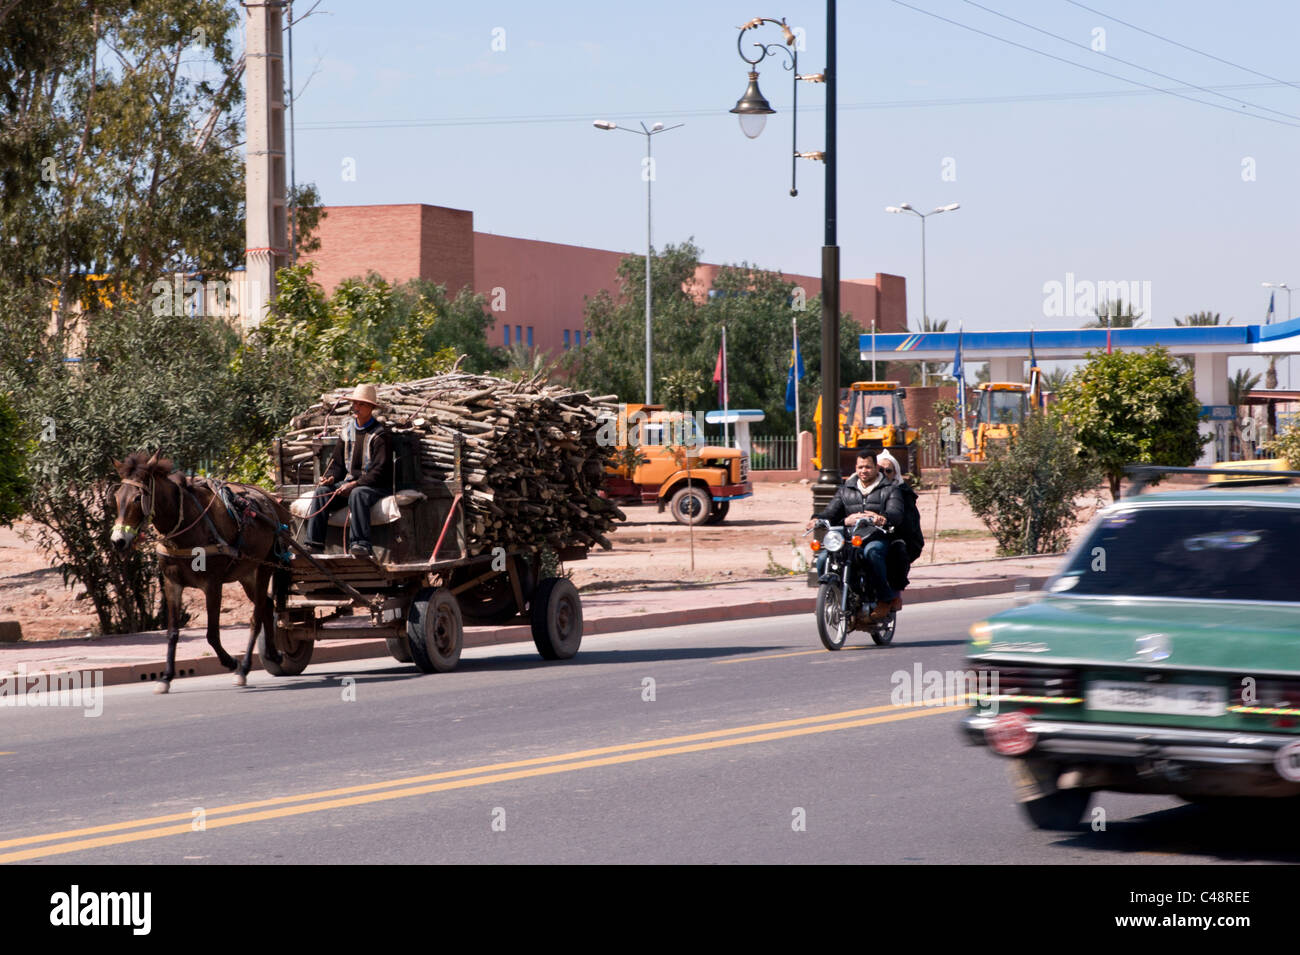 A picture of contrasts in a modernising Morocco from a horse and cart to modern commercial earth movers. - Stock Image